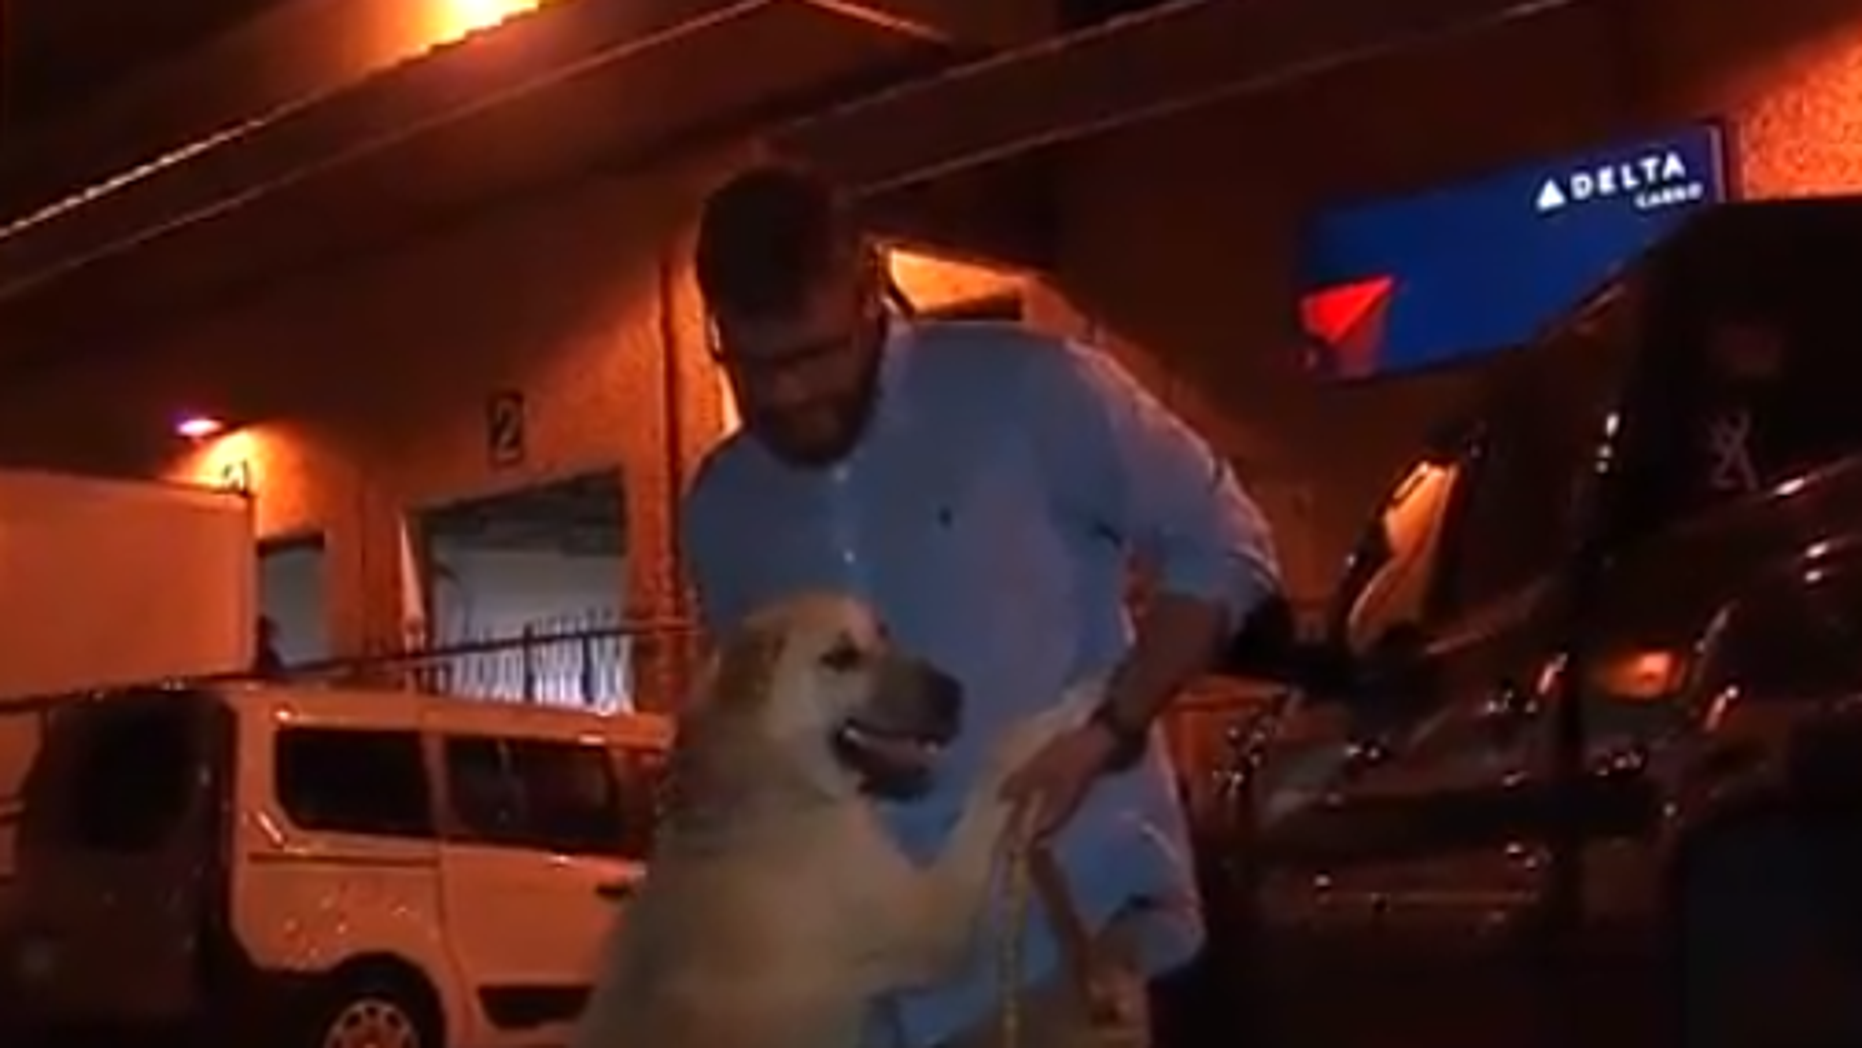 Iraq veteran Jonathan Lewis and his dog Peanut were reunited Tuesday after spending months apart.